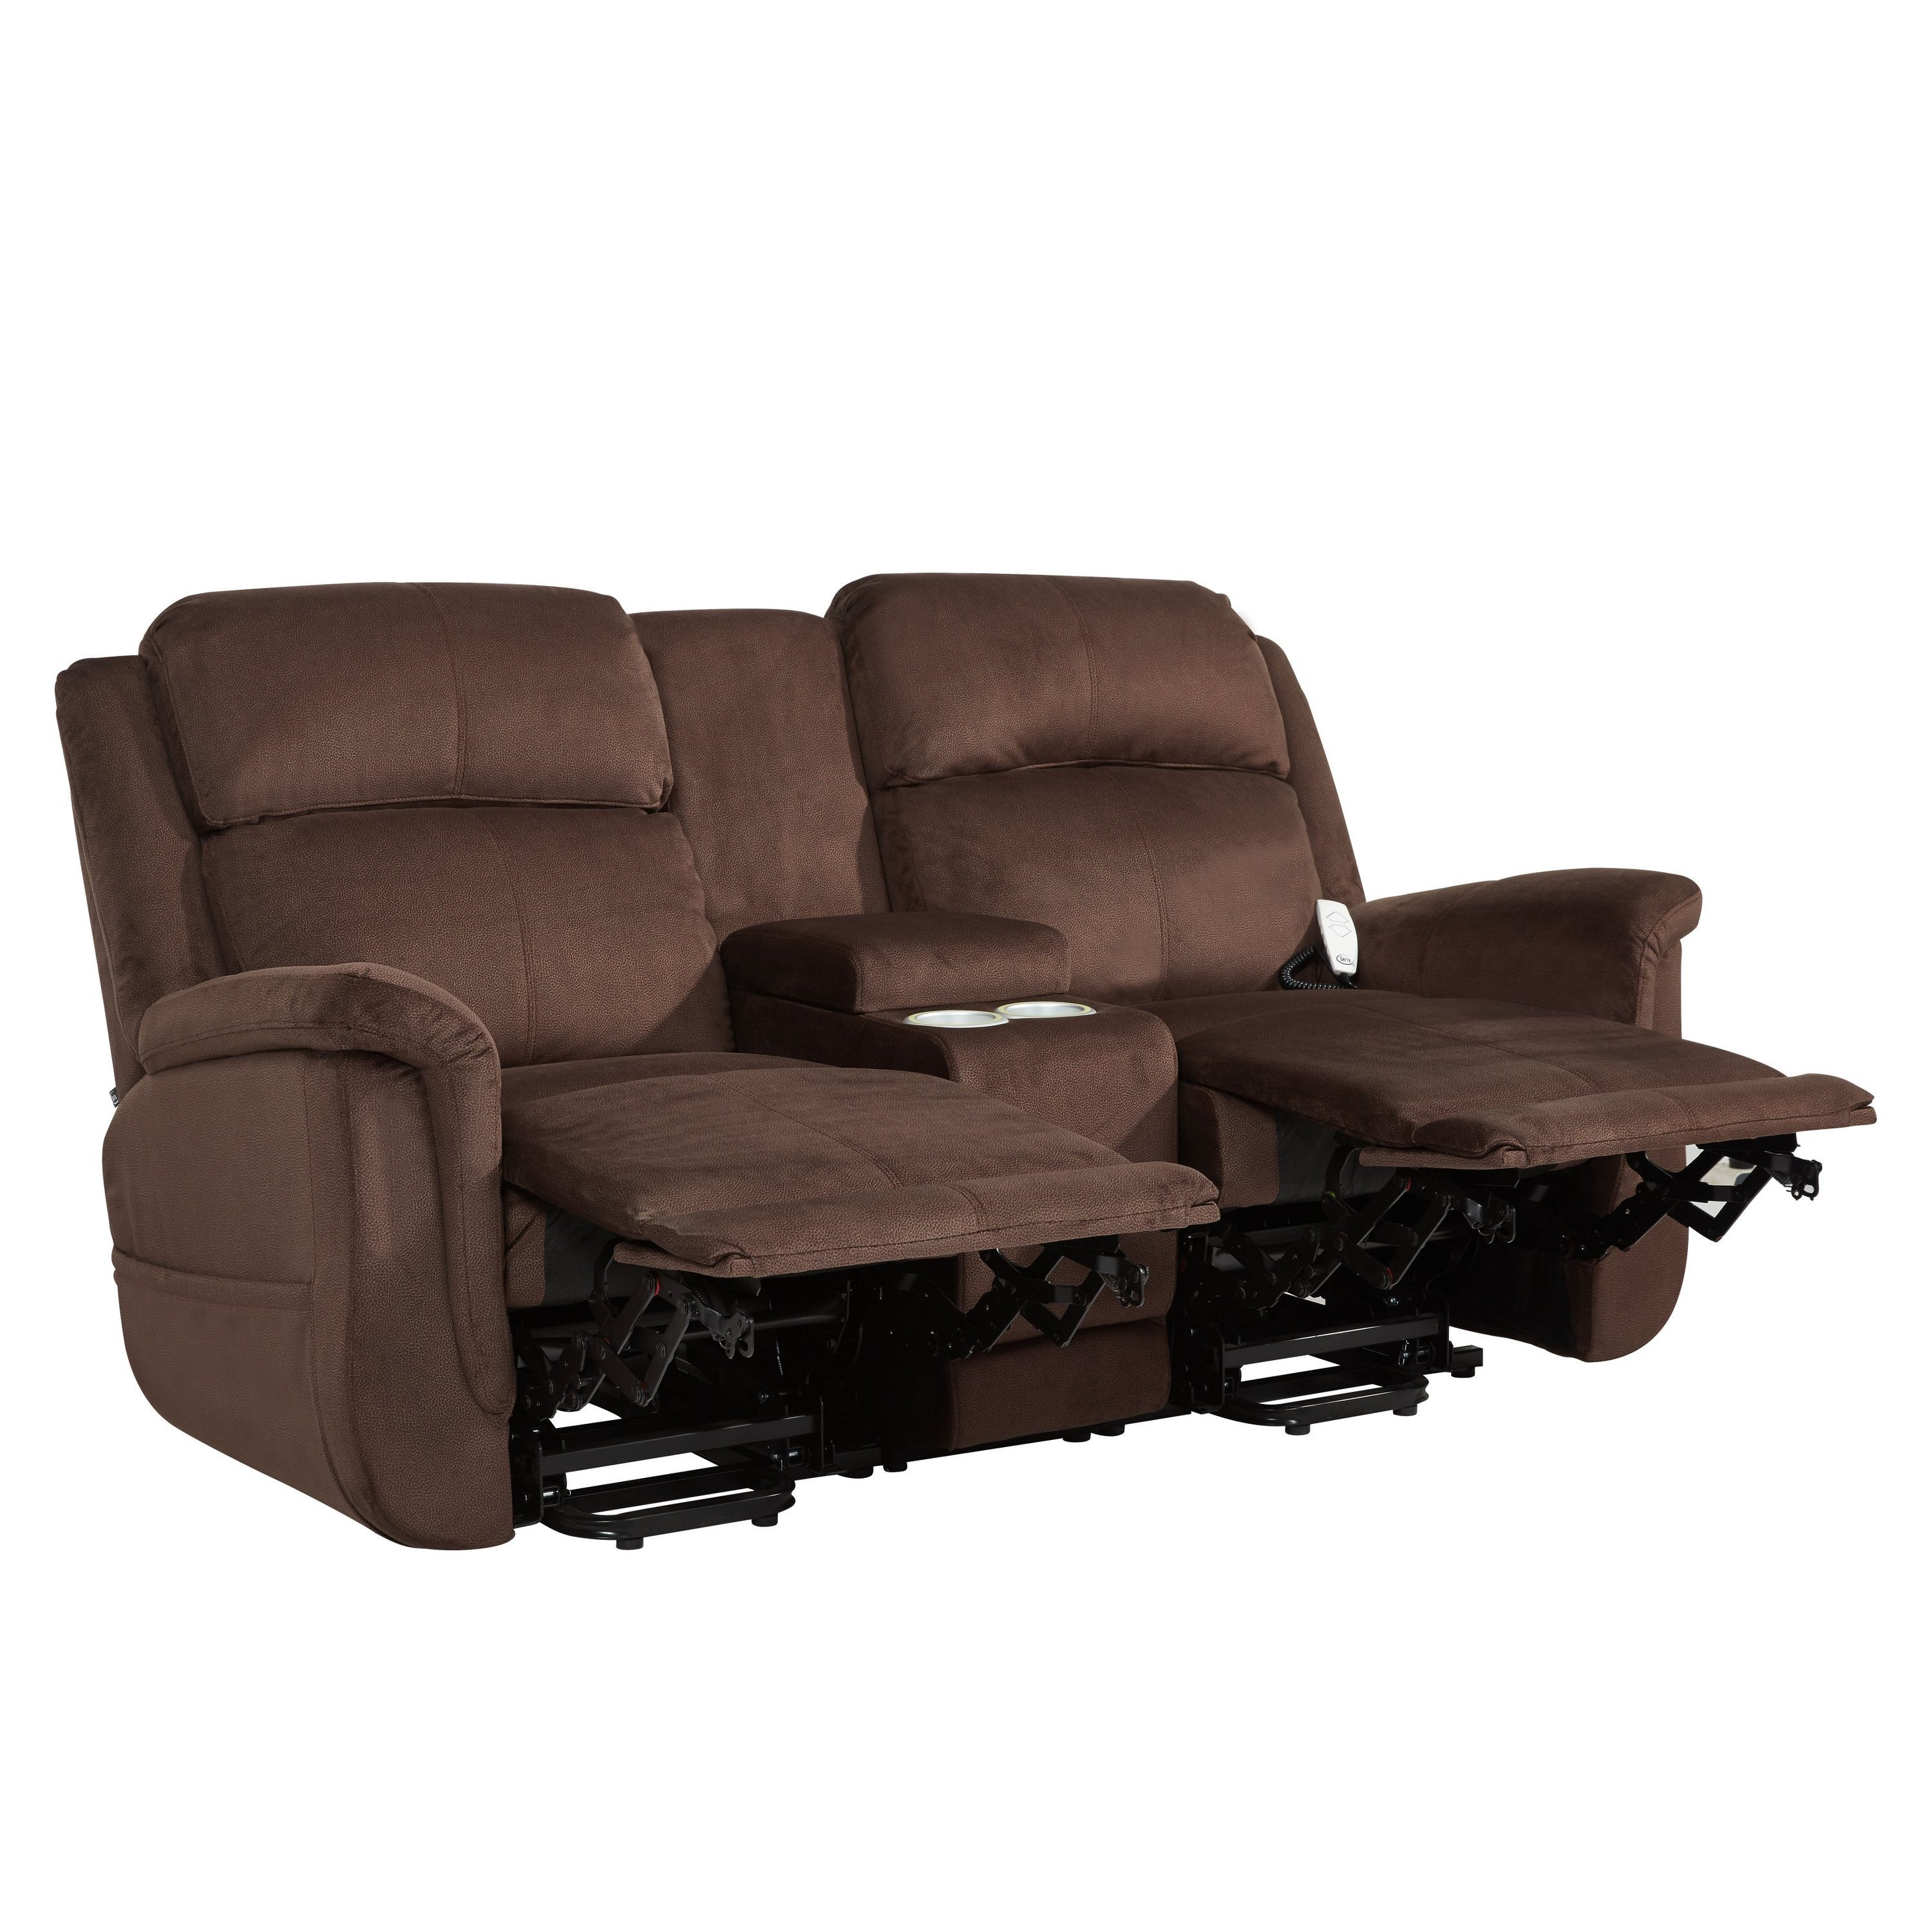 Fantastic Serta Comfort Lift Hamton Dual Power Lift Reclining Loveseat Ocoug Best Dining Table And Chair Ideas Images Ocougorg